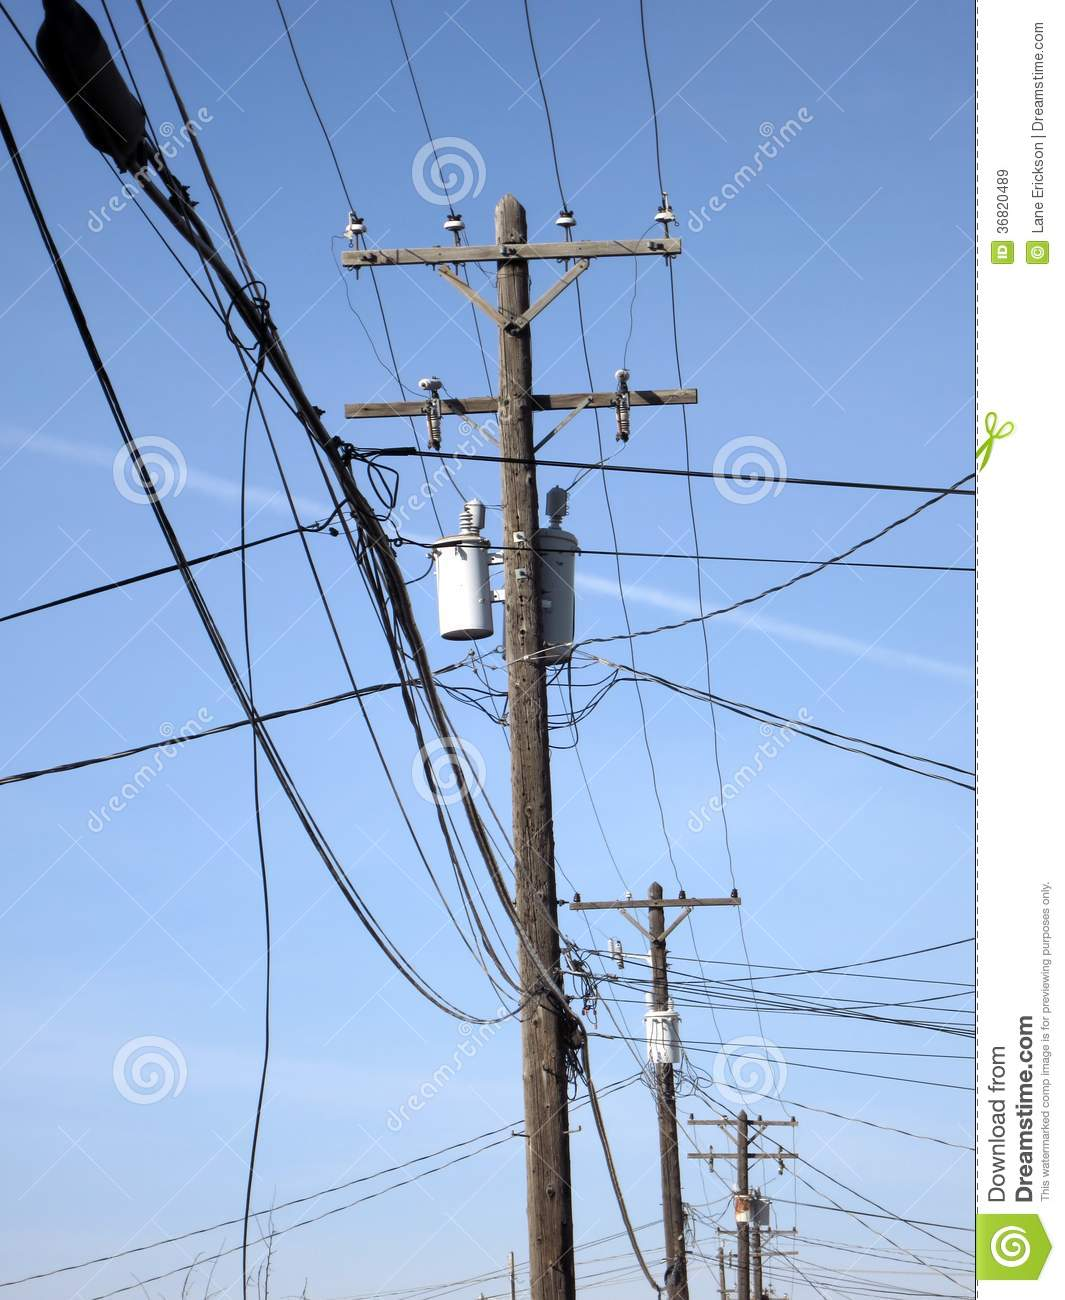 Electric Poles Power Lines : Power lines and poles in town royalty free stock images